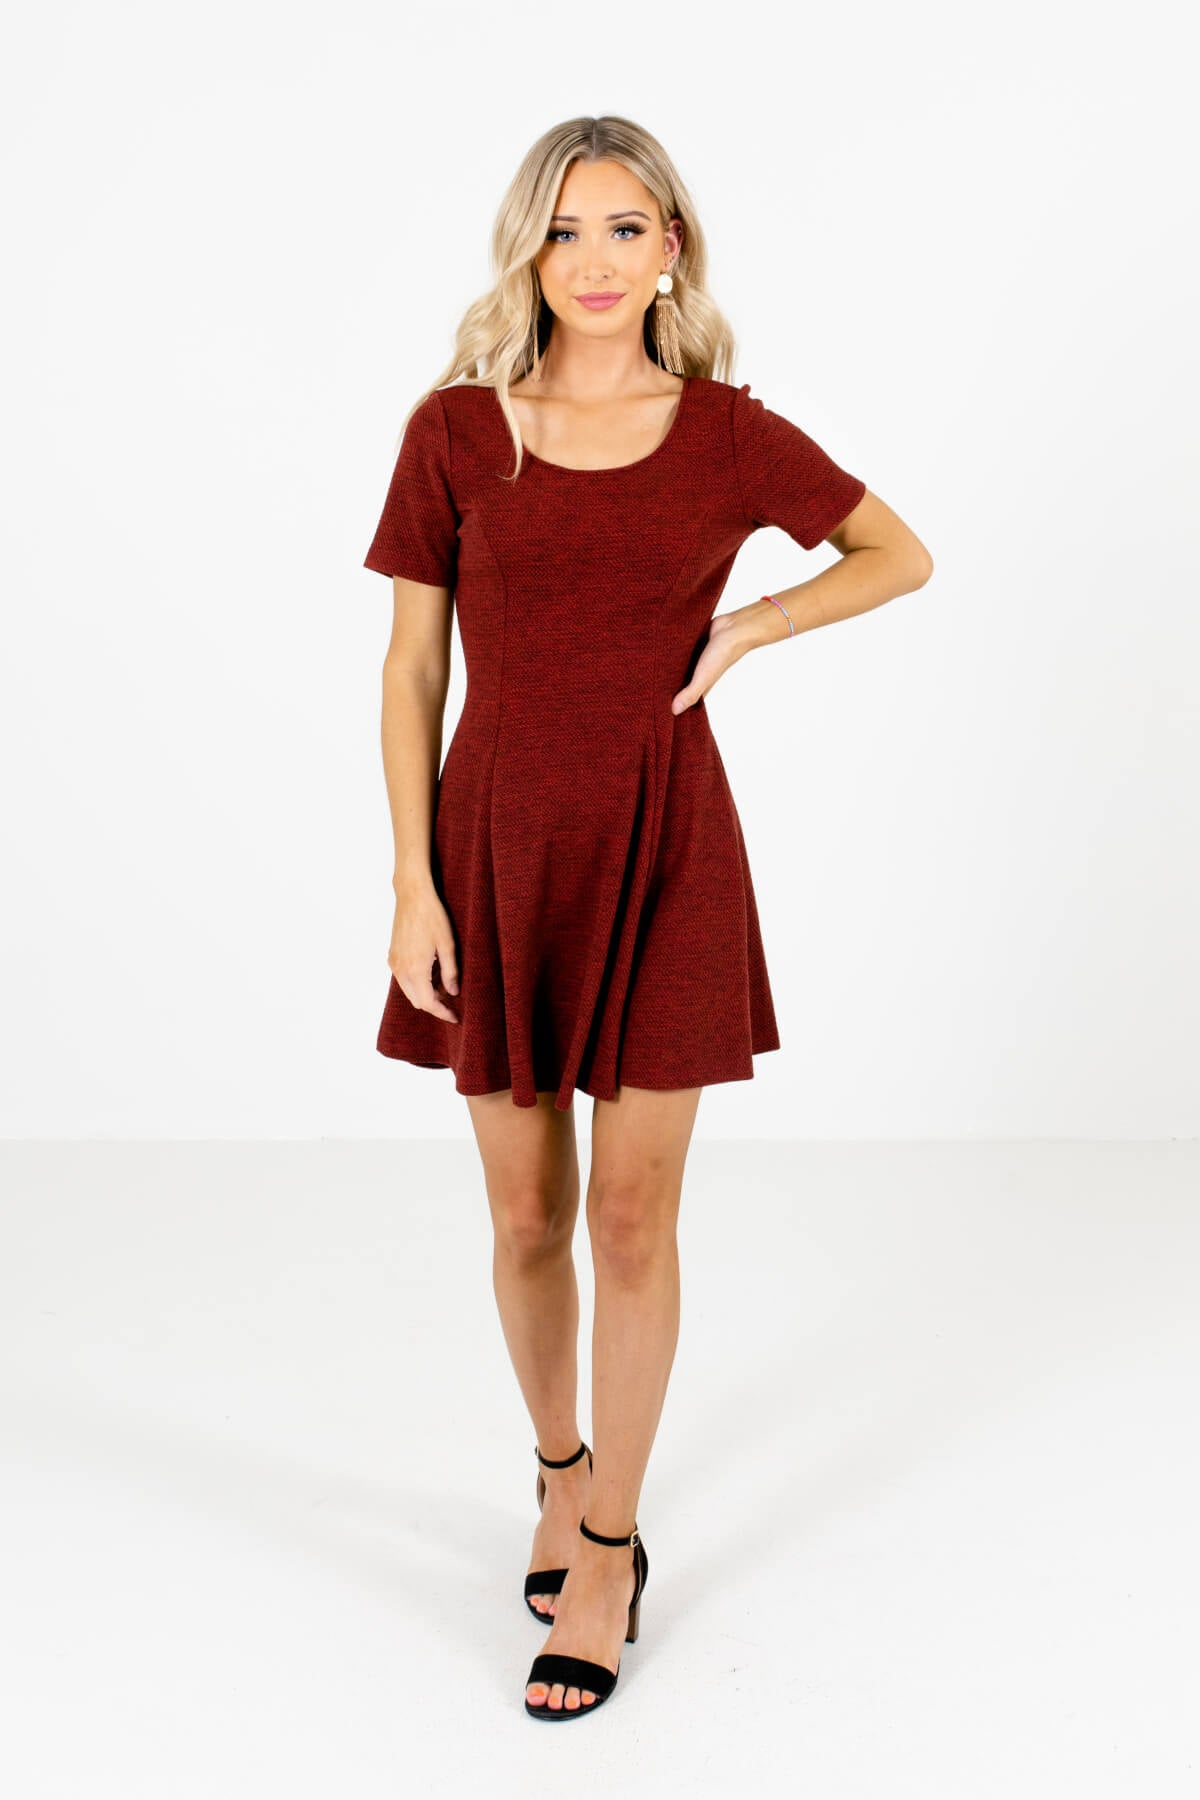 Red Going Out Winter Mini Dresses for Women